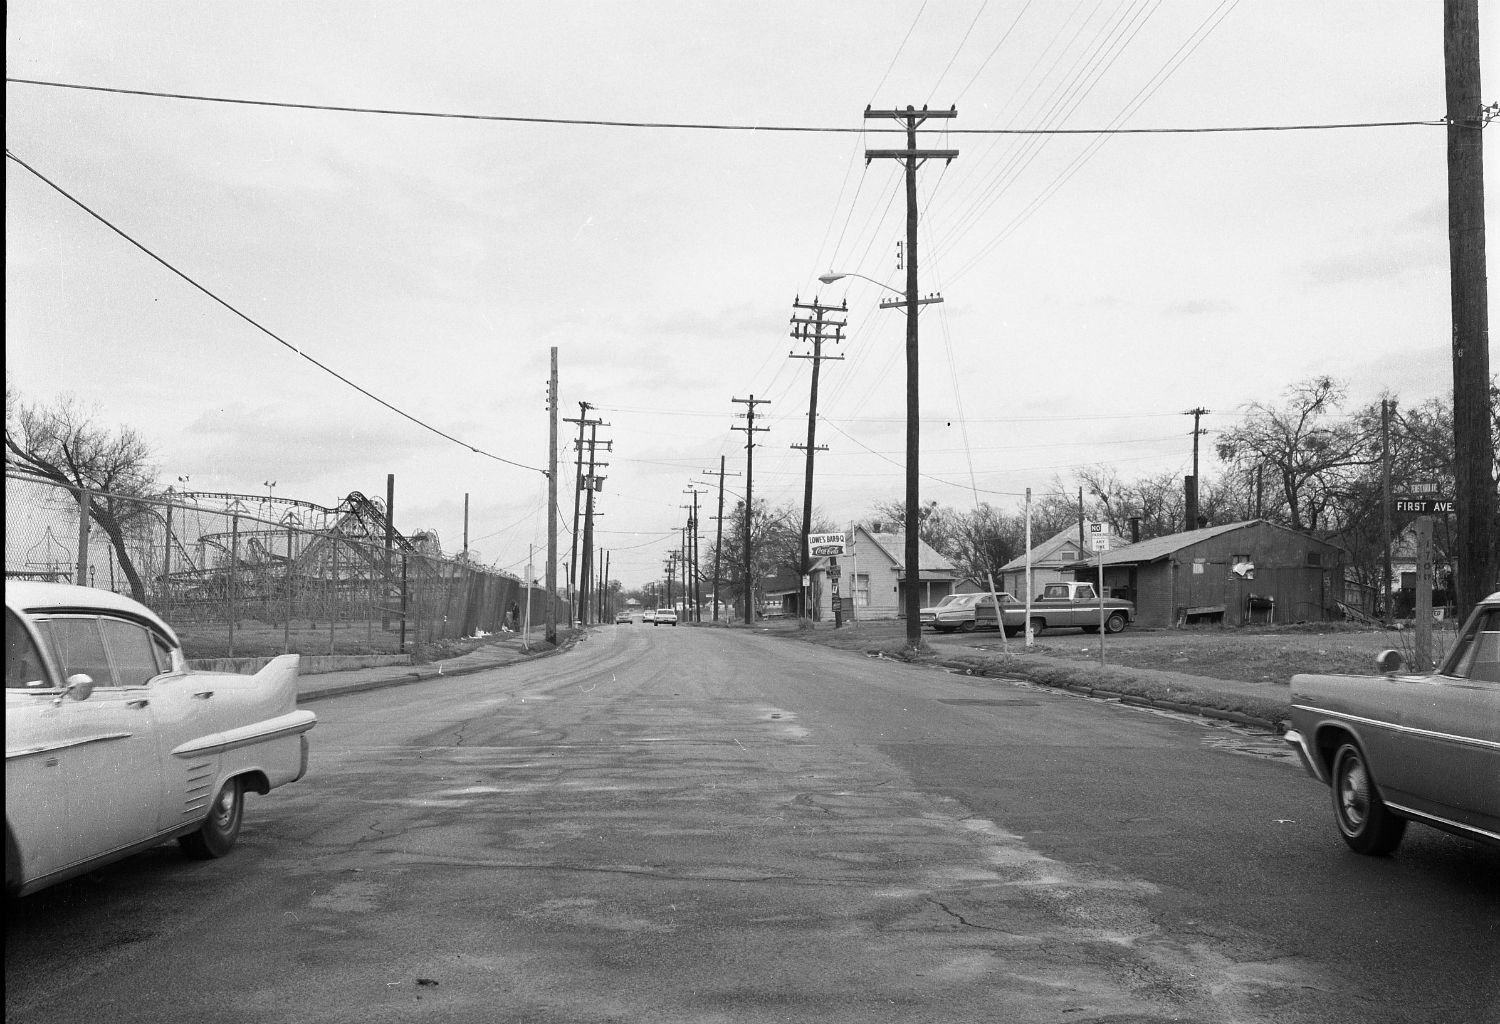 At right you can see Lowe's Bar-B-Q on Pennsylvania Avenue, which once had a ringside seat to the doings in the Fair Park midway until the city bulldozed this neighborhood in the 1960s and '70s.